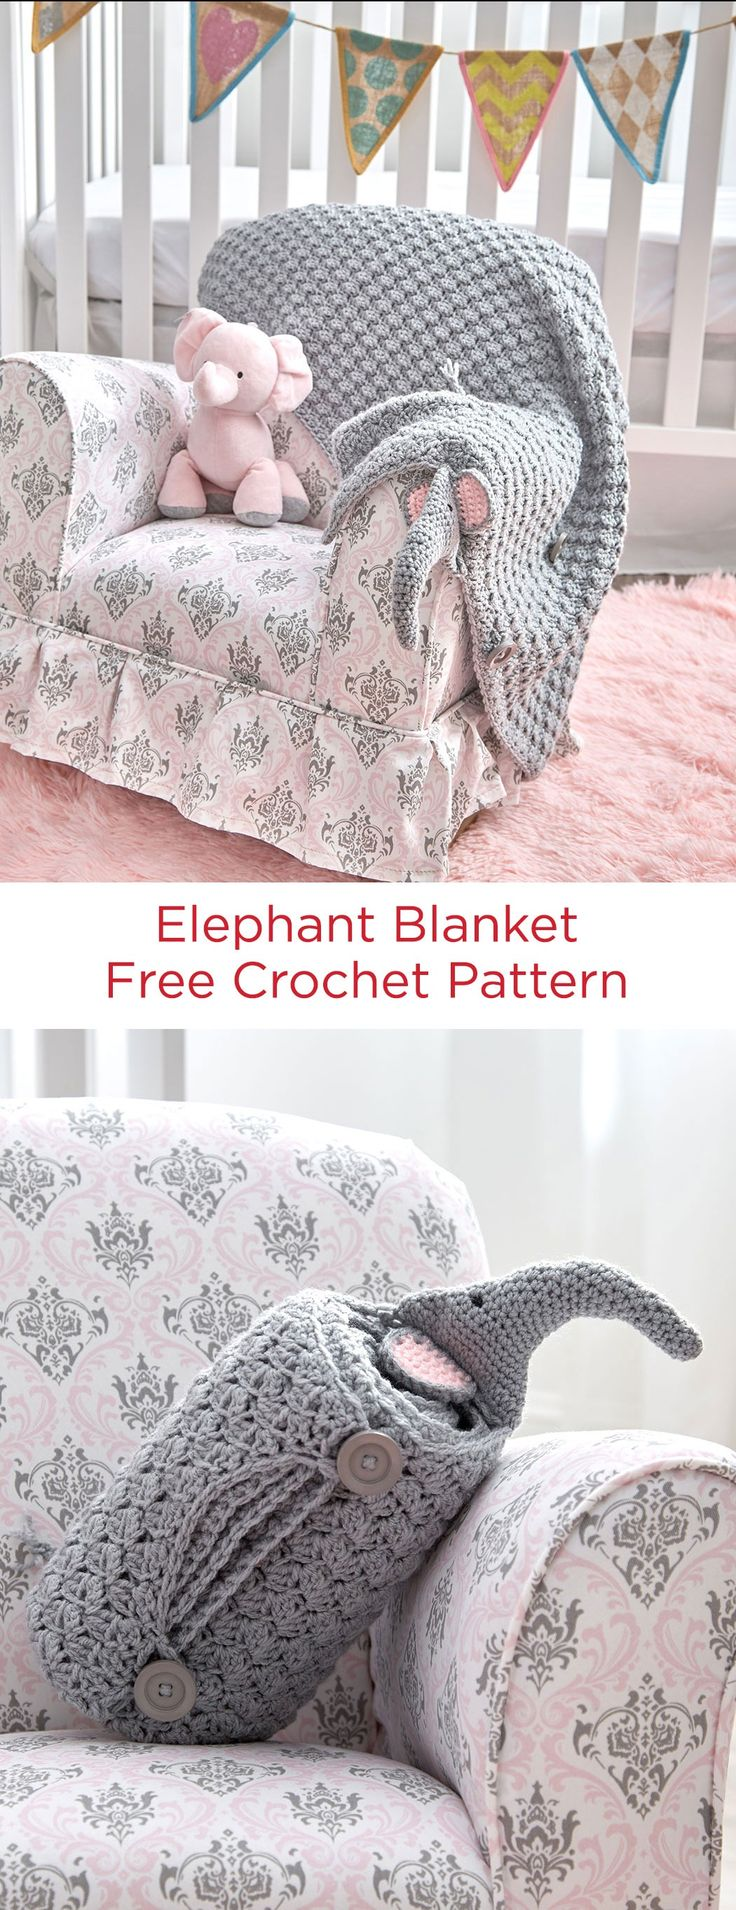 Elephant Blanket Free Crochet Pattern in Red Heart Yarns -- Here's a blanket that doubles as a huggable pillow! Elephant's head and tail are added to the edges so that they are visible after you roll it up. Button and loop closures keep it securely rolled.